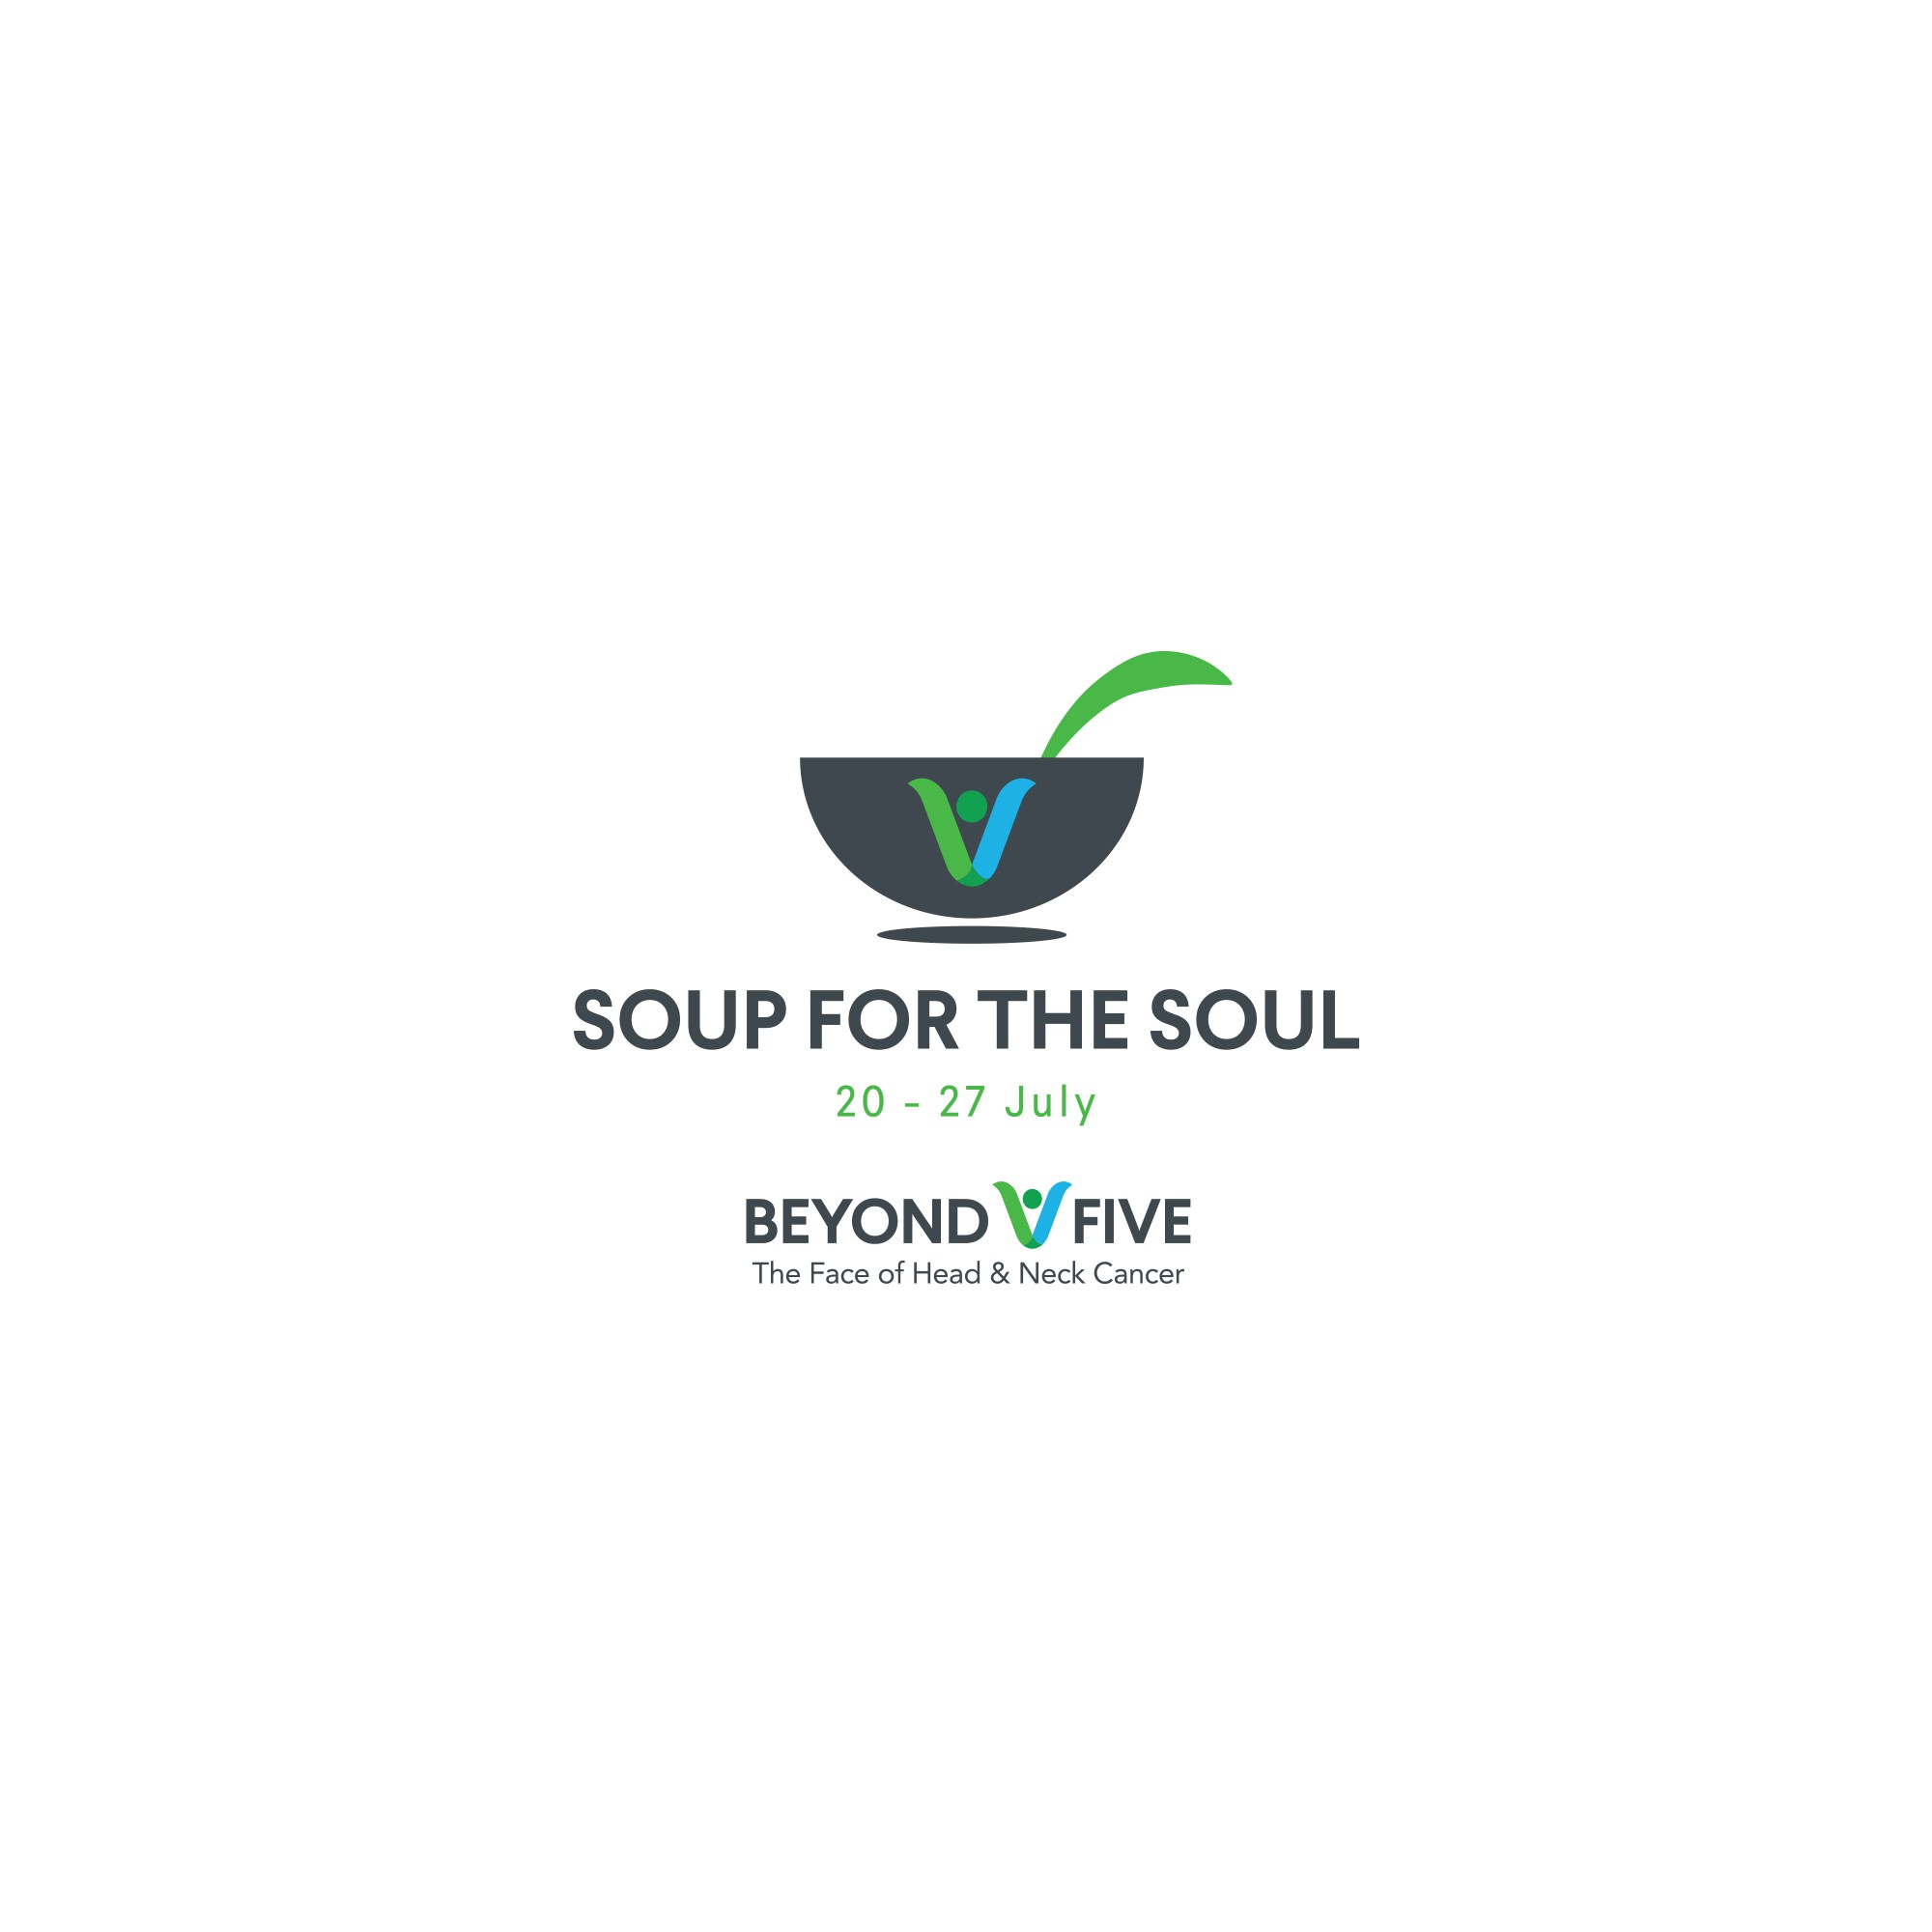 Soup for the Soul 2019